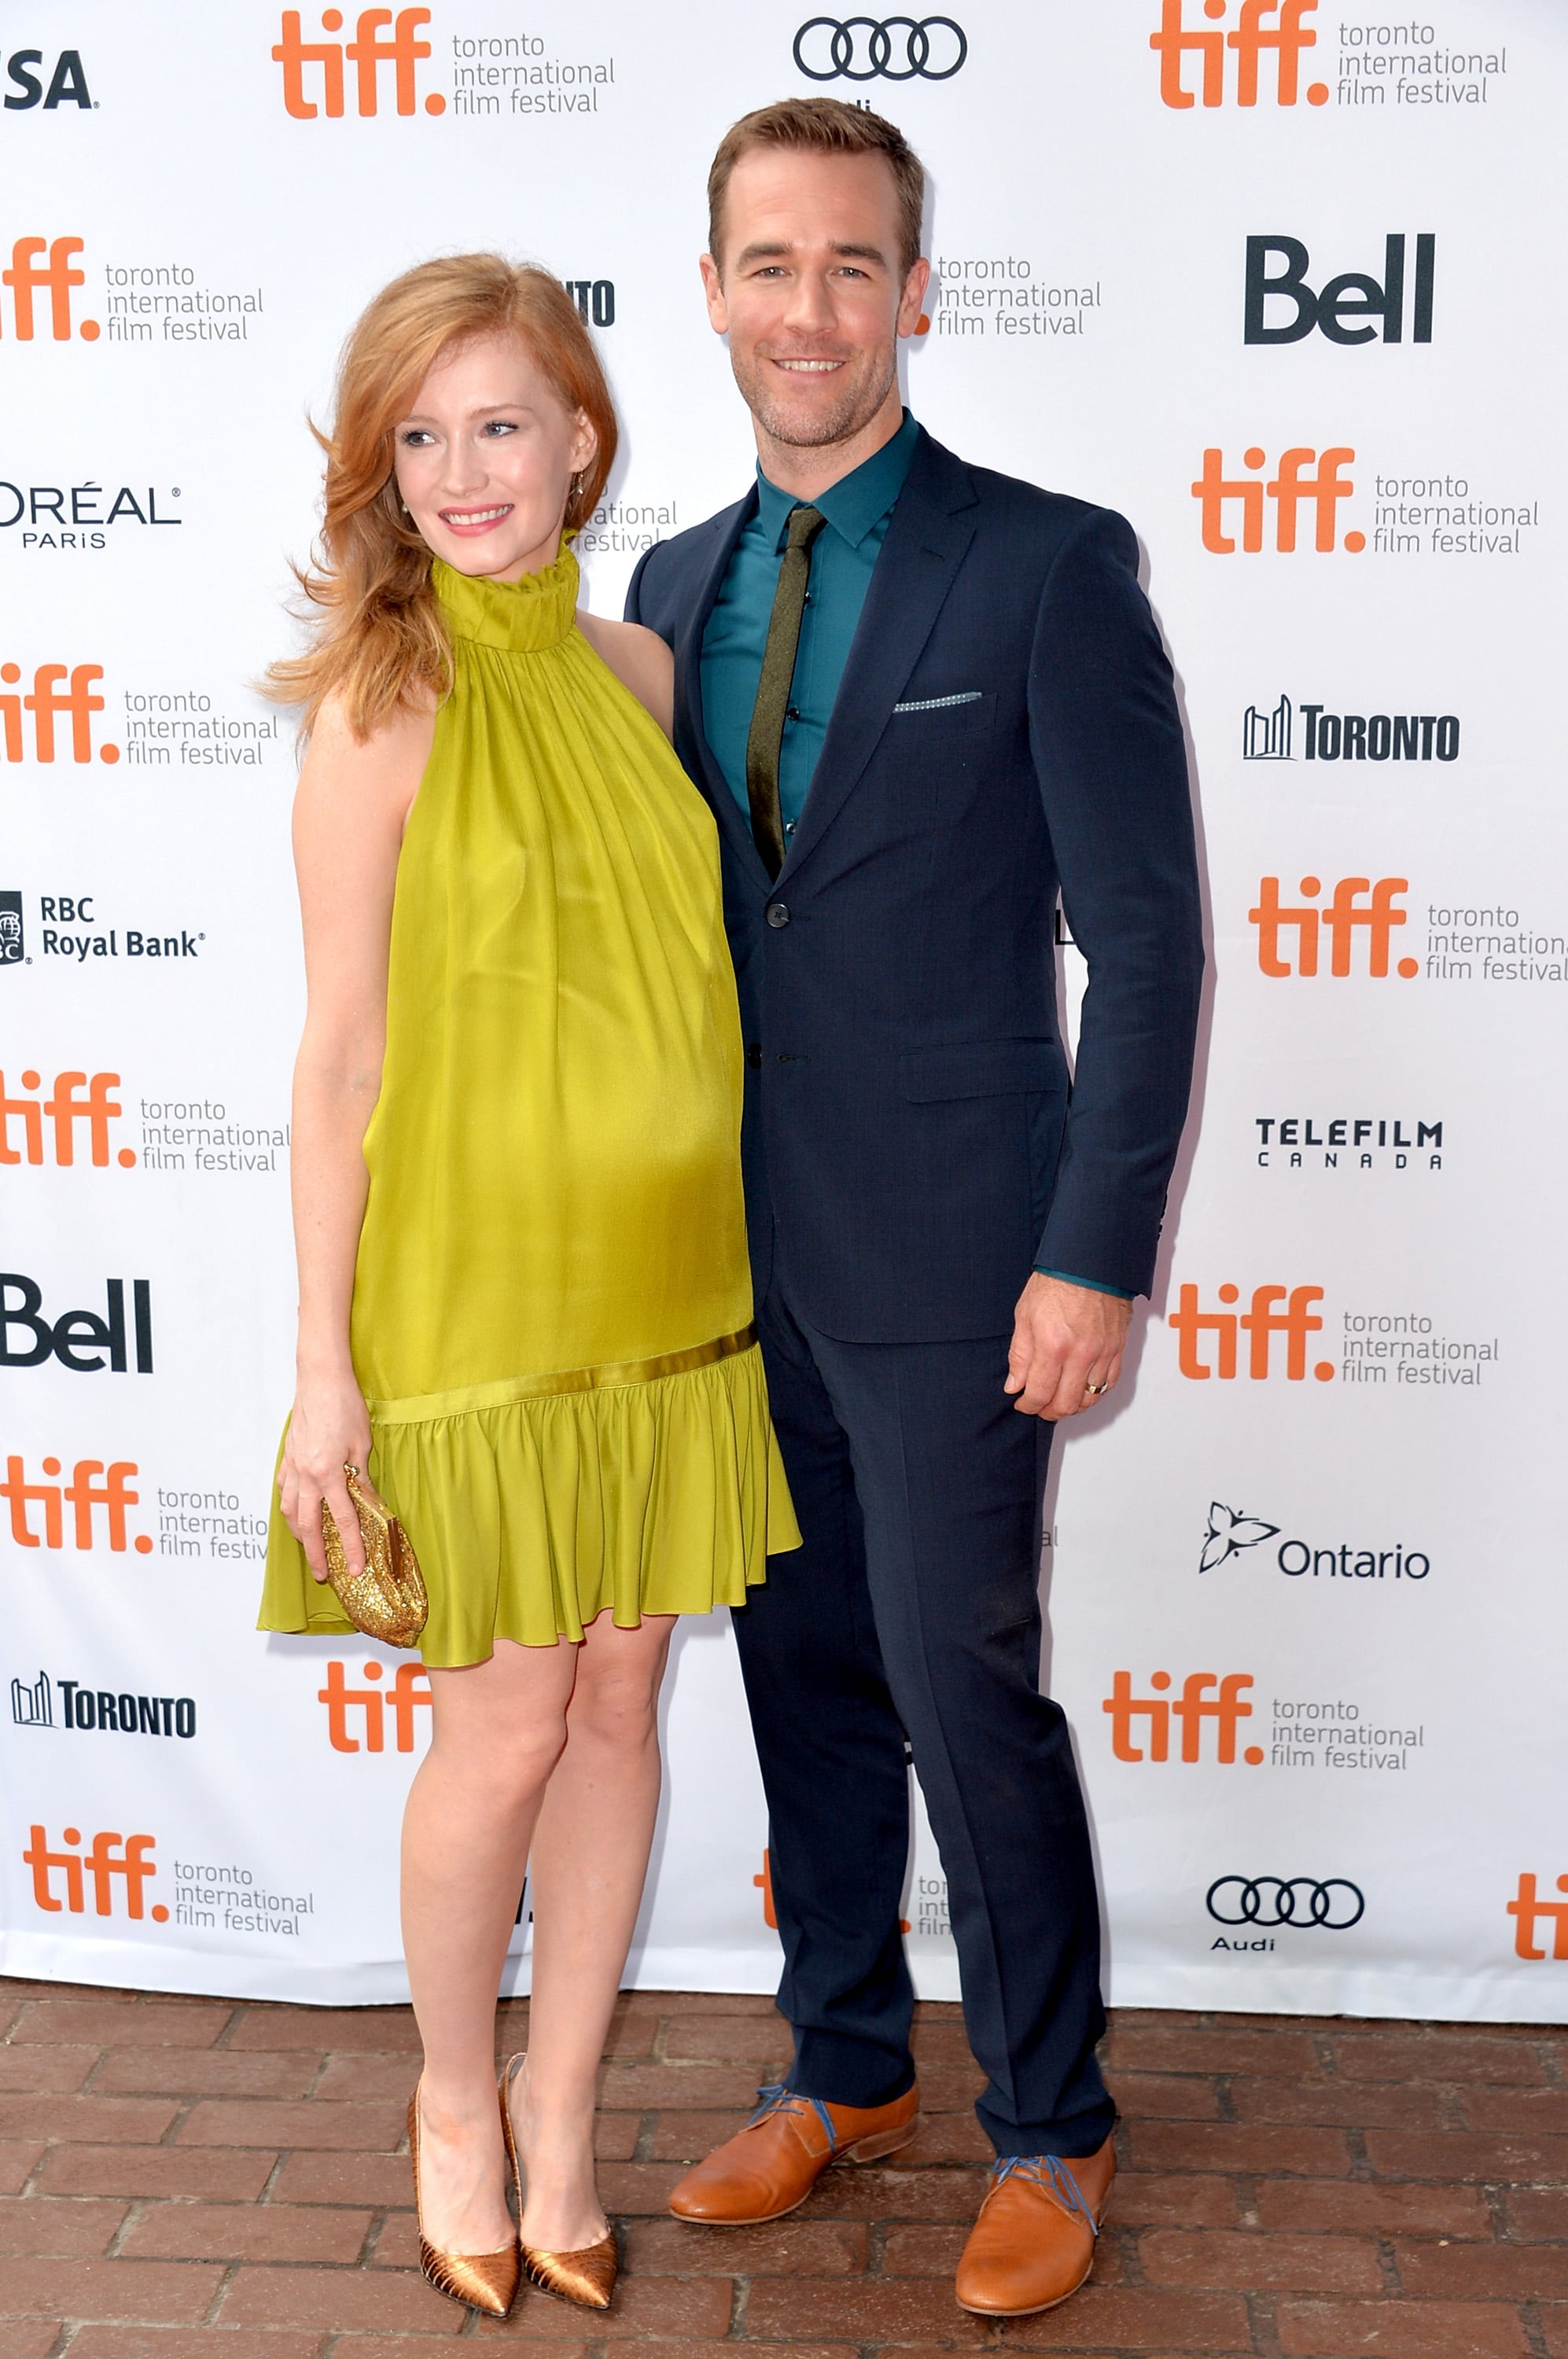 James Van Der Beek brought his pregnant wife, Kimberly, as his date to the Labor Day premiere.